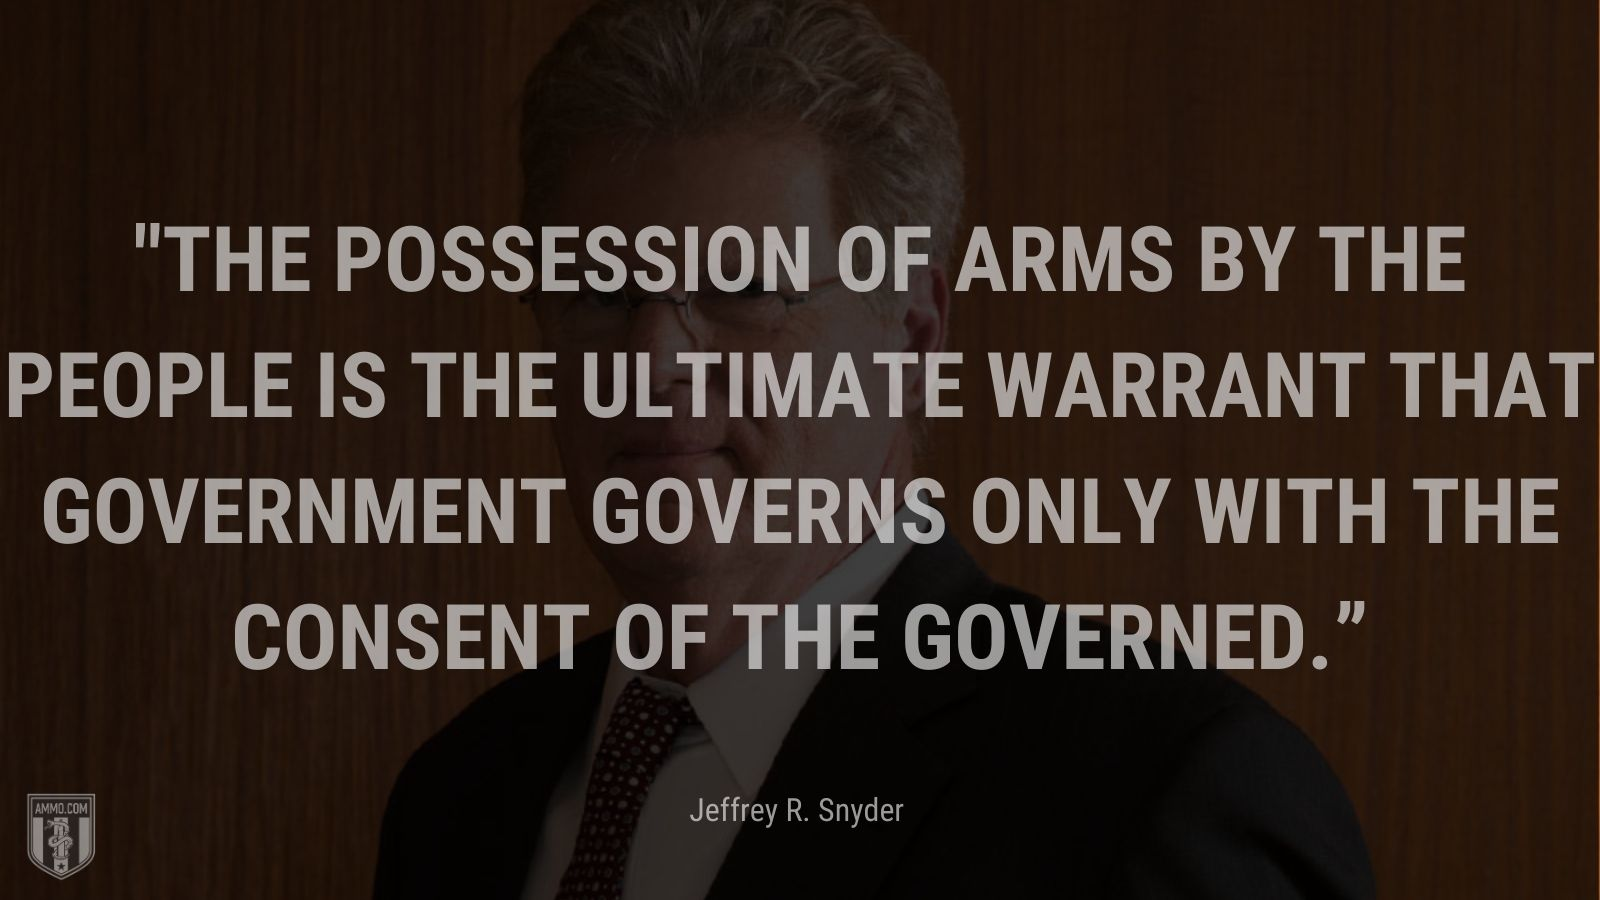 """""""The possession of arms by the people is the ultimate warrant that government governs only with the consent of the governed."""" - Jeffrey R. Snyder"""